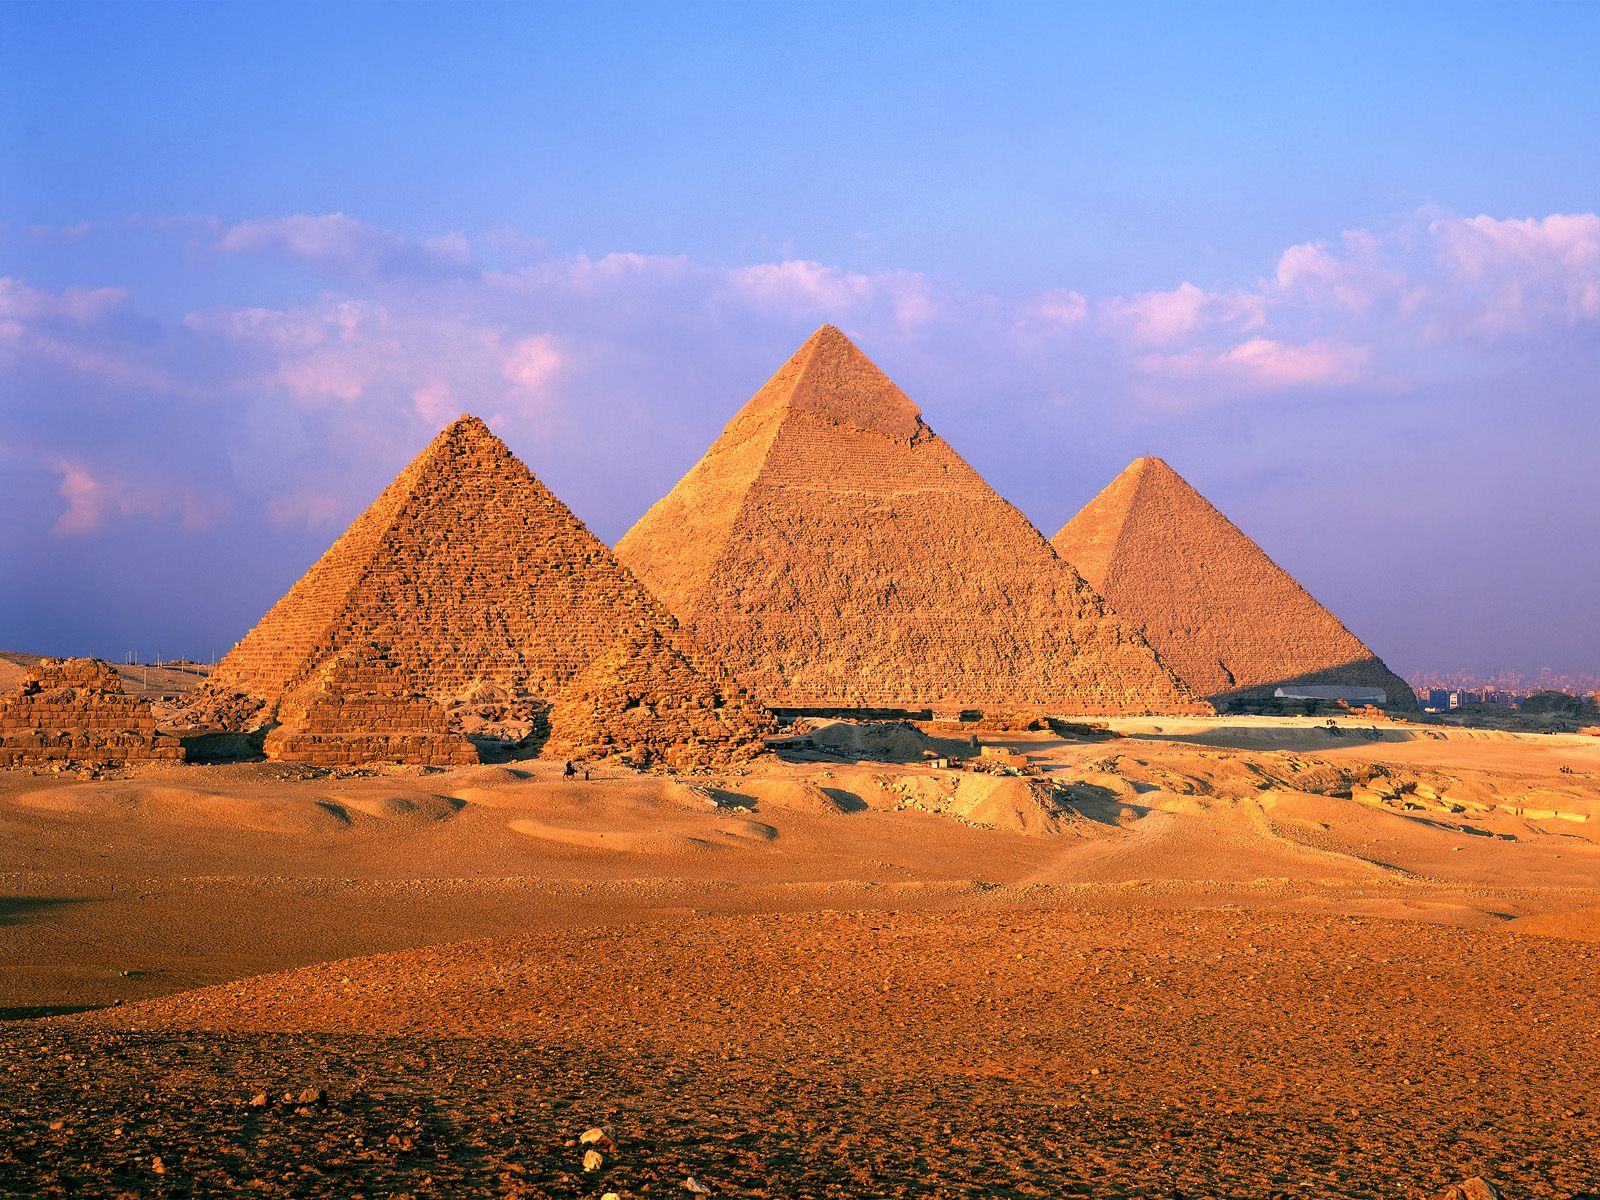 Pyramids of Giza Egypt Wallpapers HD Wallpapers 1600x1200